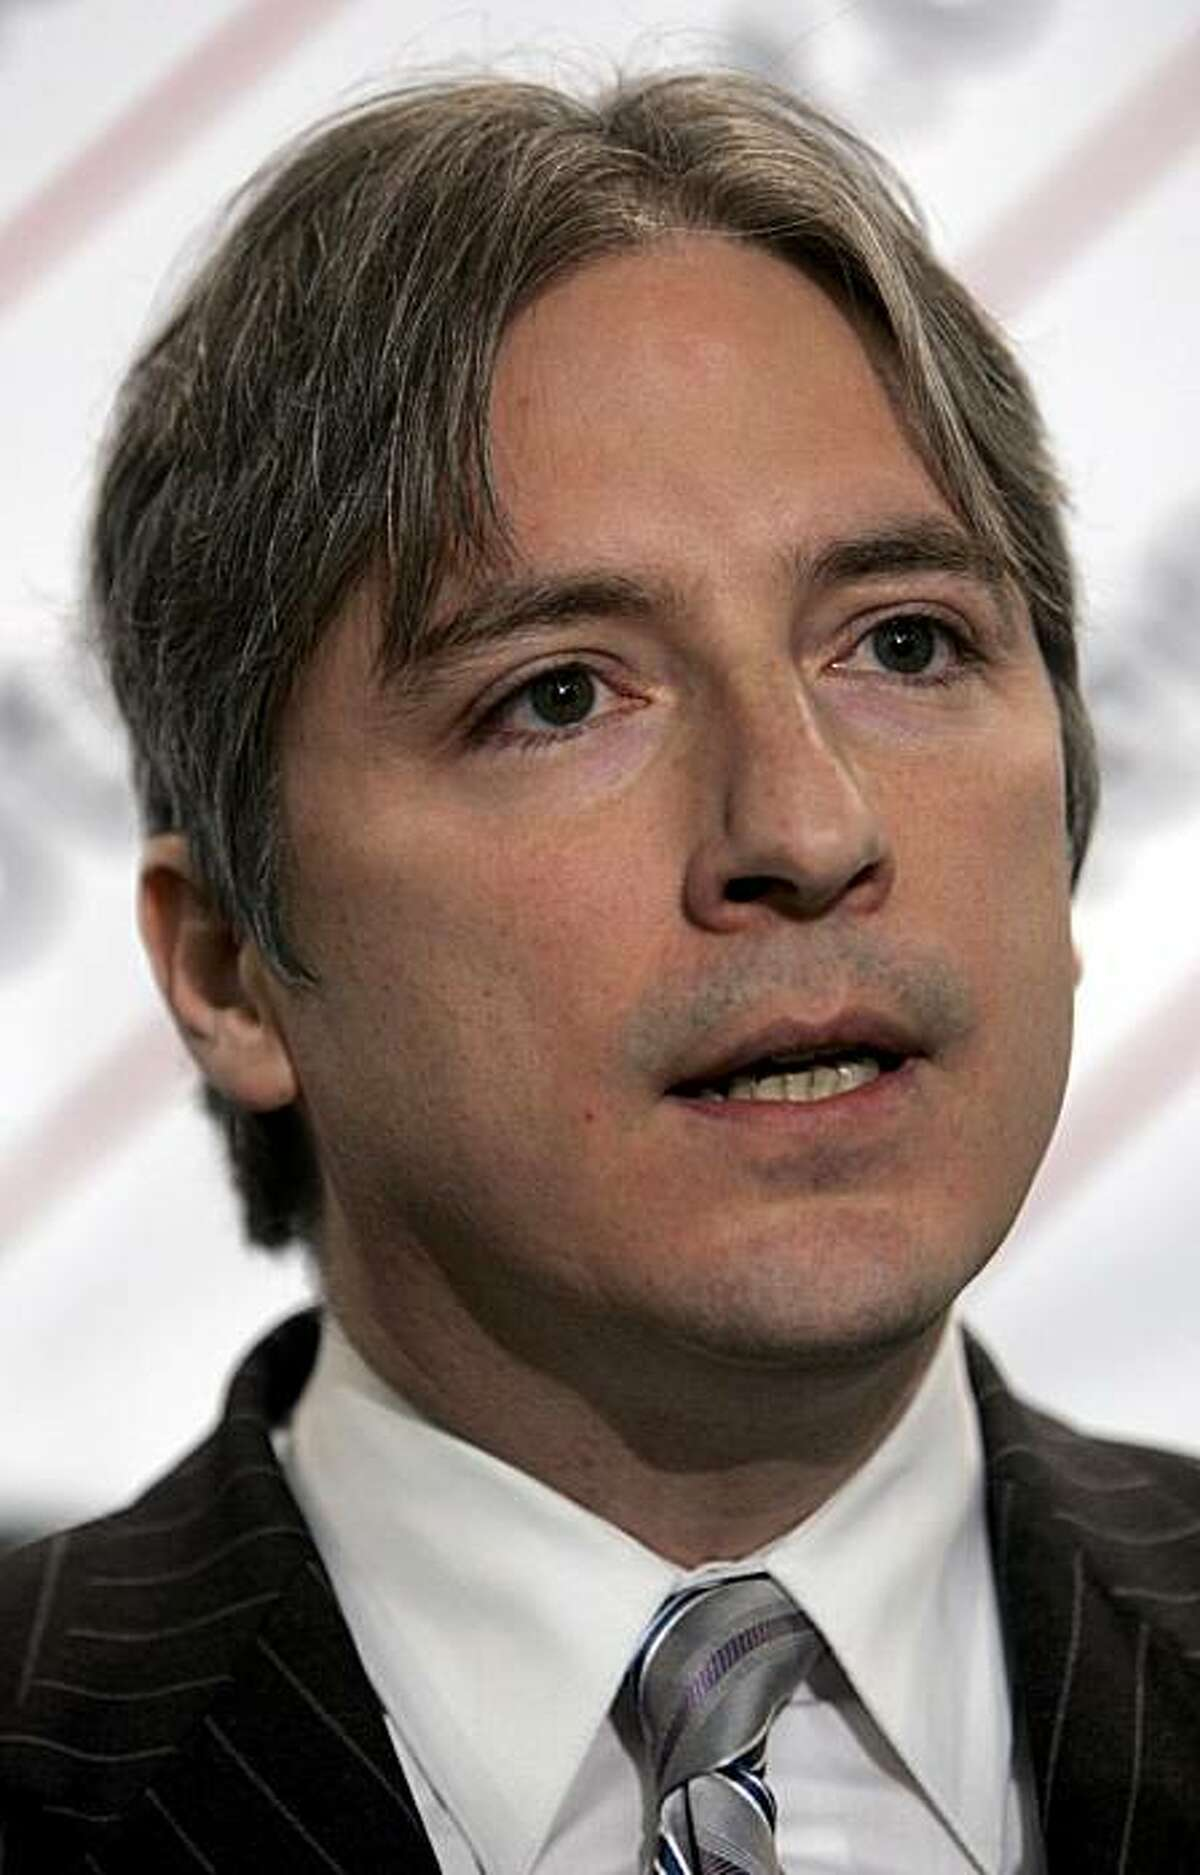 Matt Gonzalez, a former member of the San Francisco Board of Supervisors, speaks at the National Press Club in Washington, Thursday, Feb. 28, 2008, during a news conference where Independent presidential candidate Ralph Nader, not shown, announced Gonzalez as his running mate. (AP Photo/Lawrence Jackson)